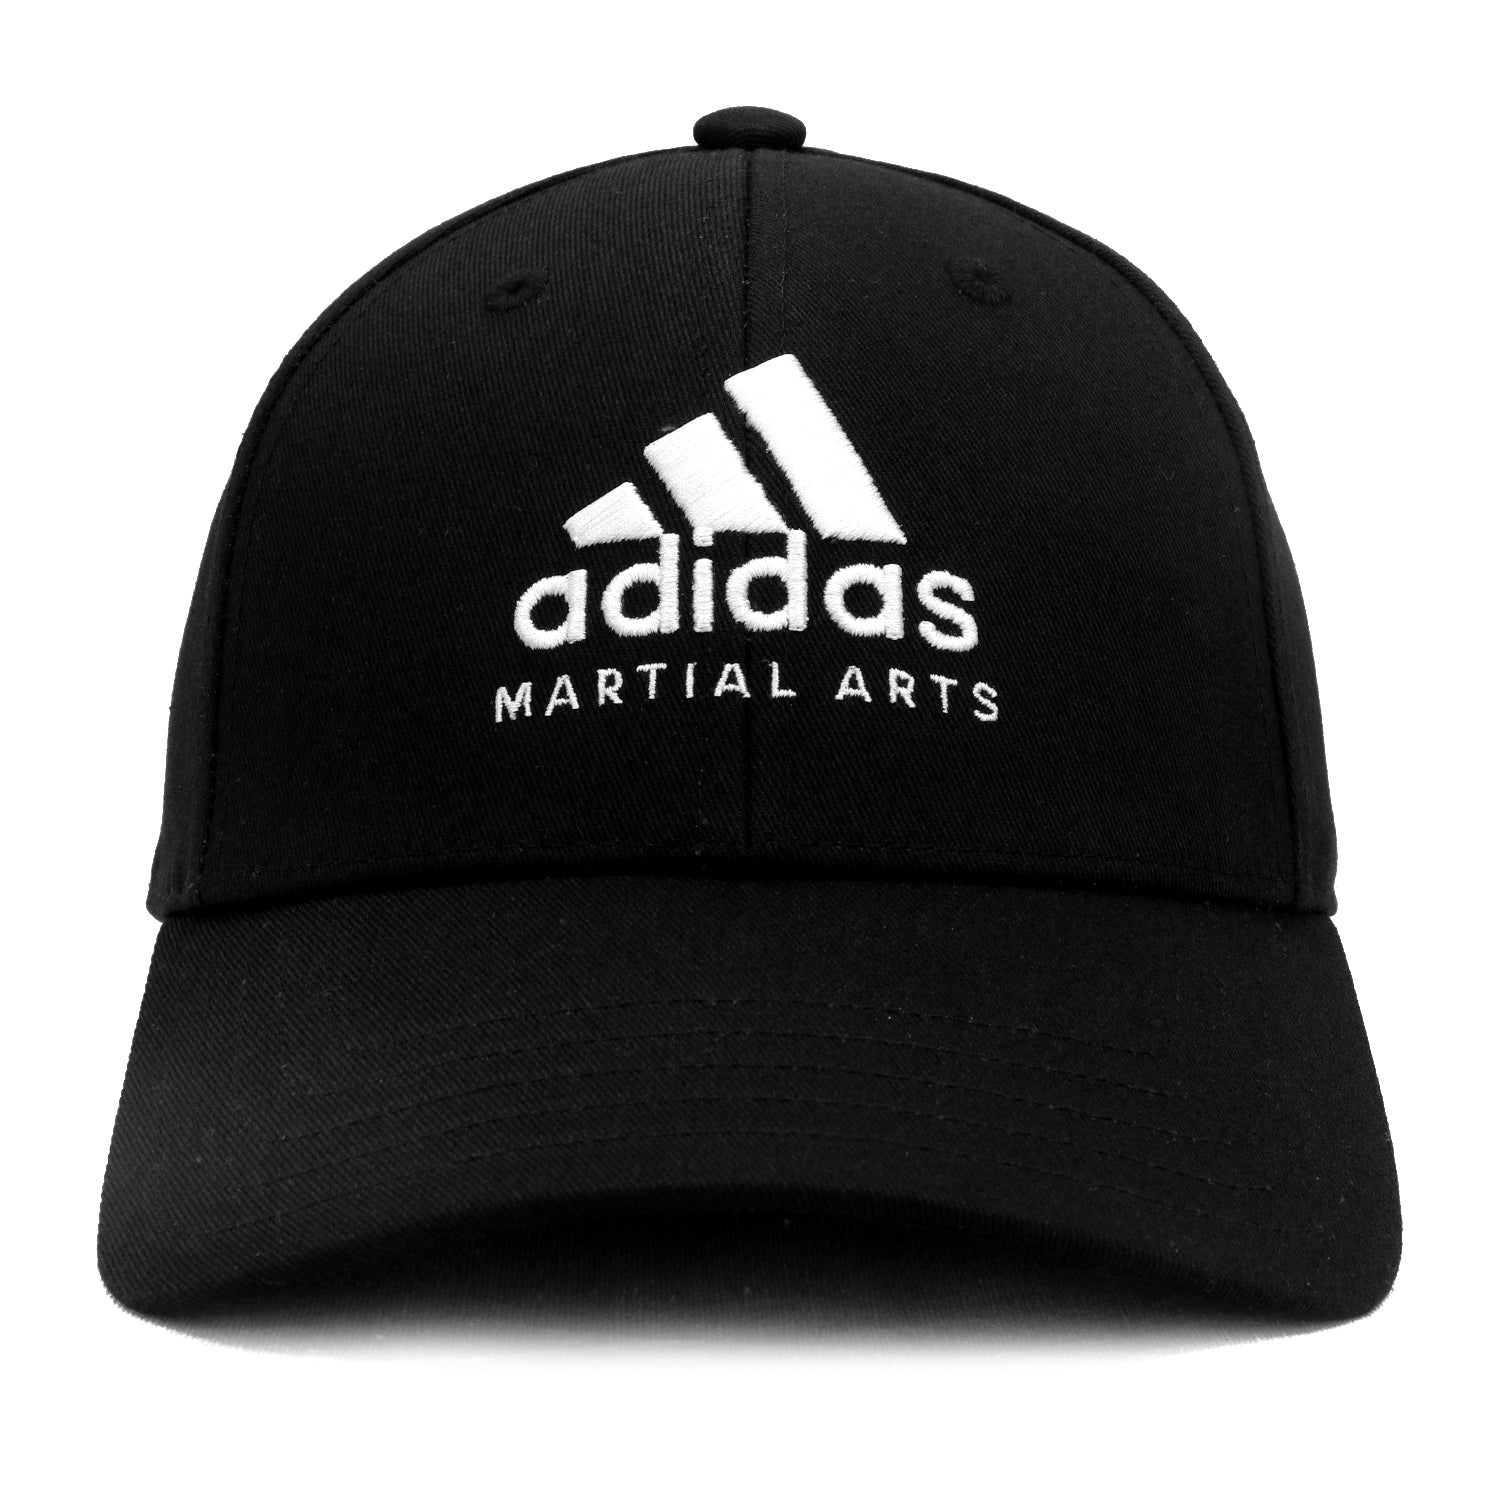 adidas Martial Arts Embroidered Structured Precurved Cap - Black